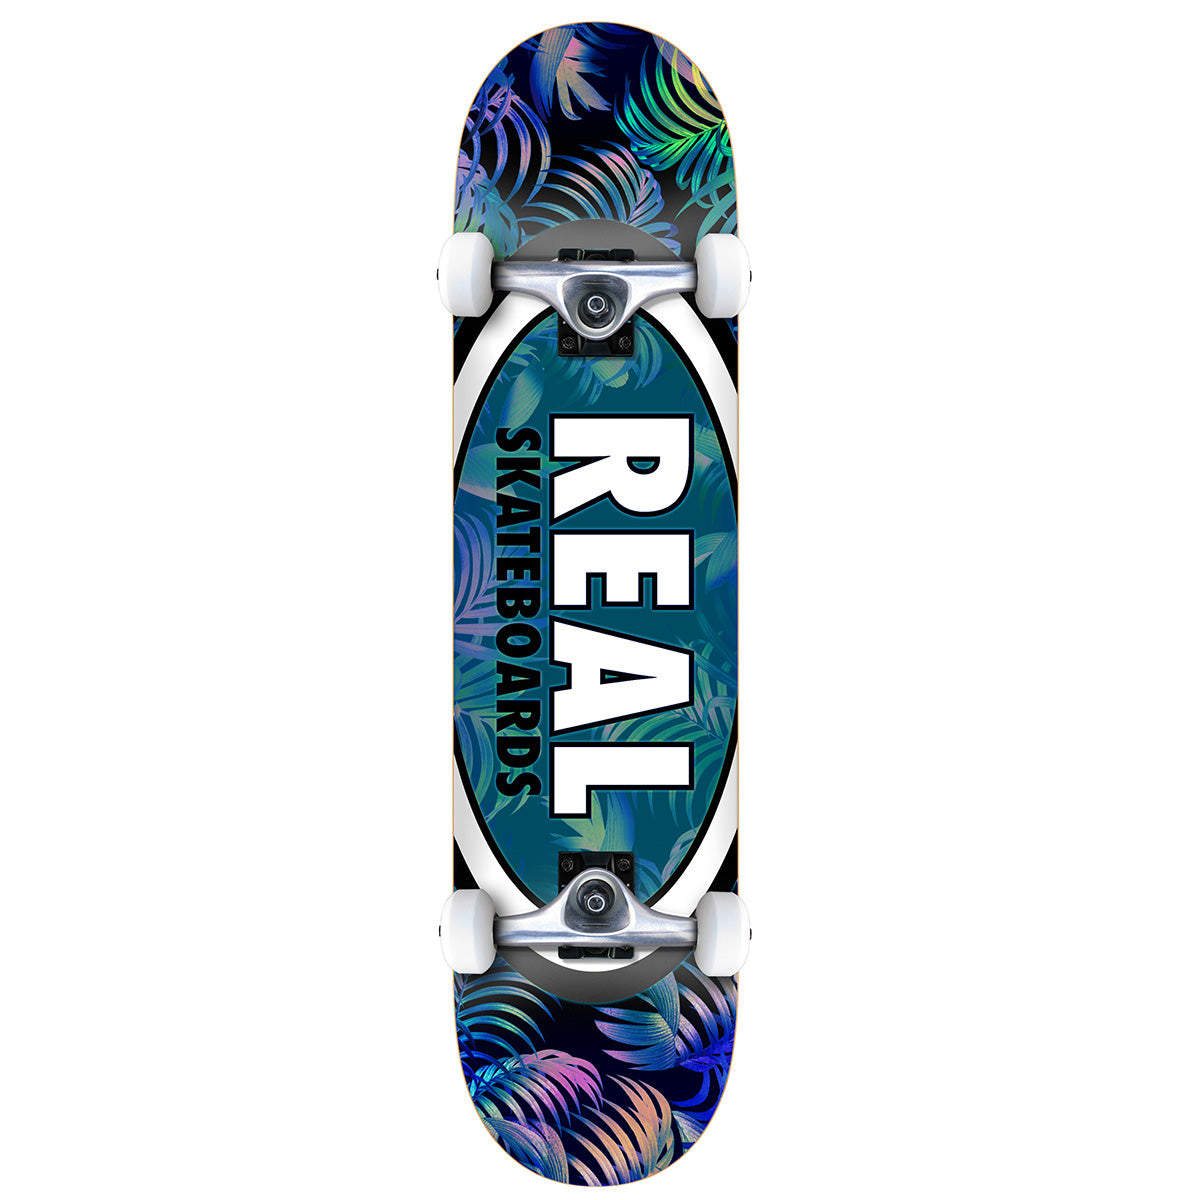 Real Complete - Tropic Oval 7.5"